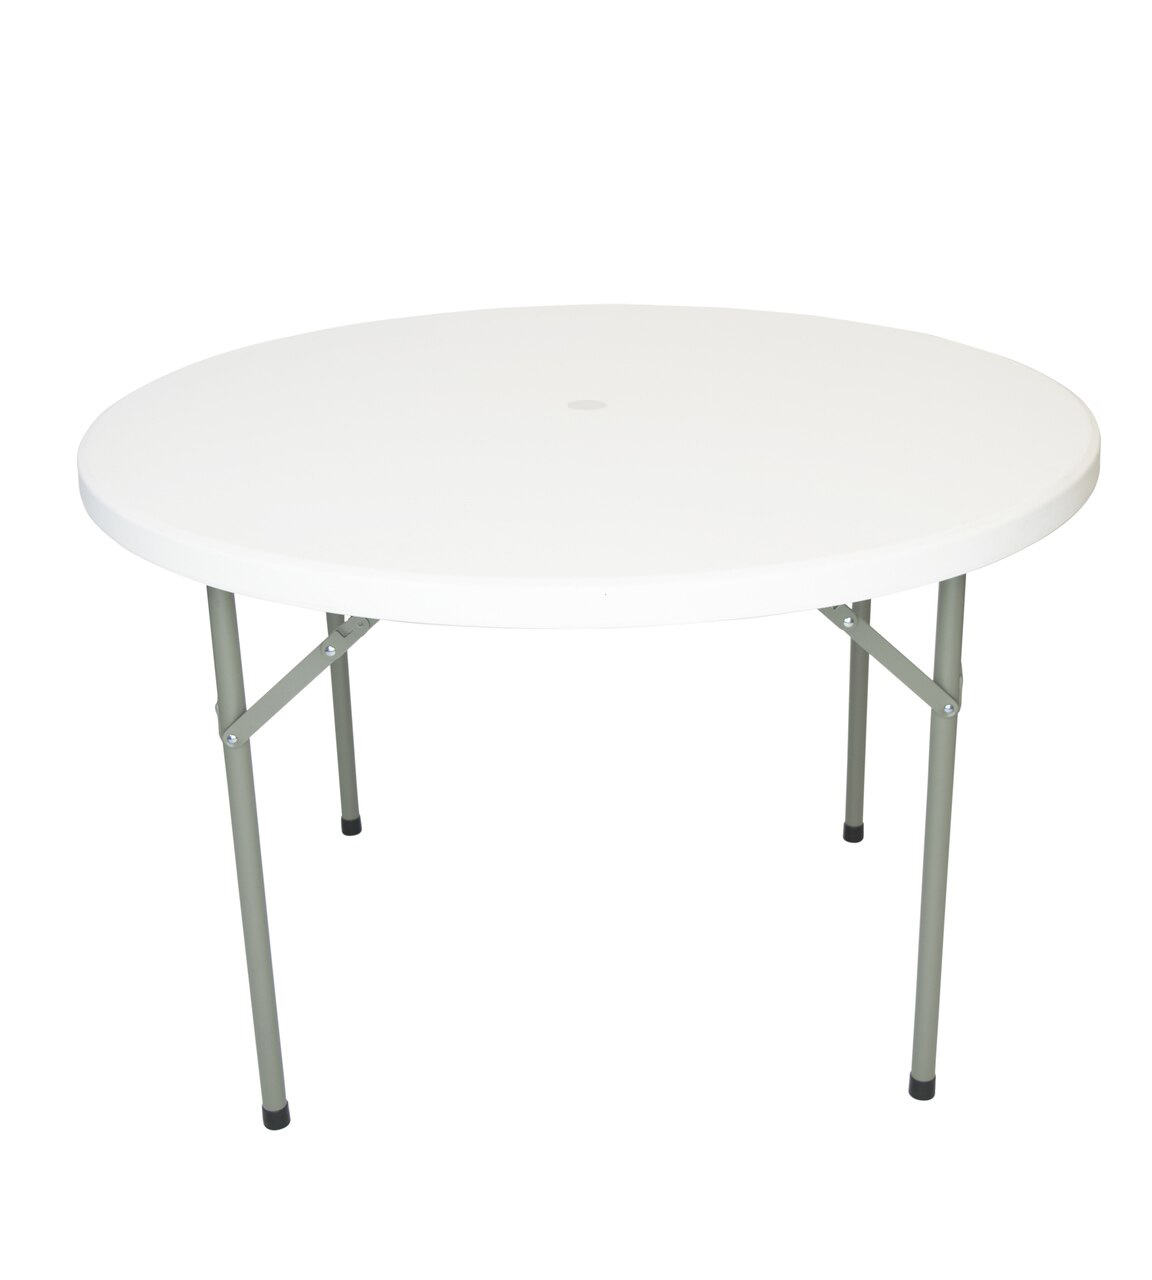 Rhinolite 48 4 Ft Round Plastic Folding Table With Umbrella Hole Solid One Piece Top Locking Steel Frame Foldingchairsandtables Com